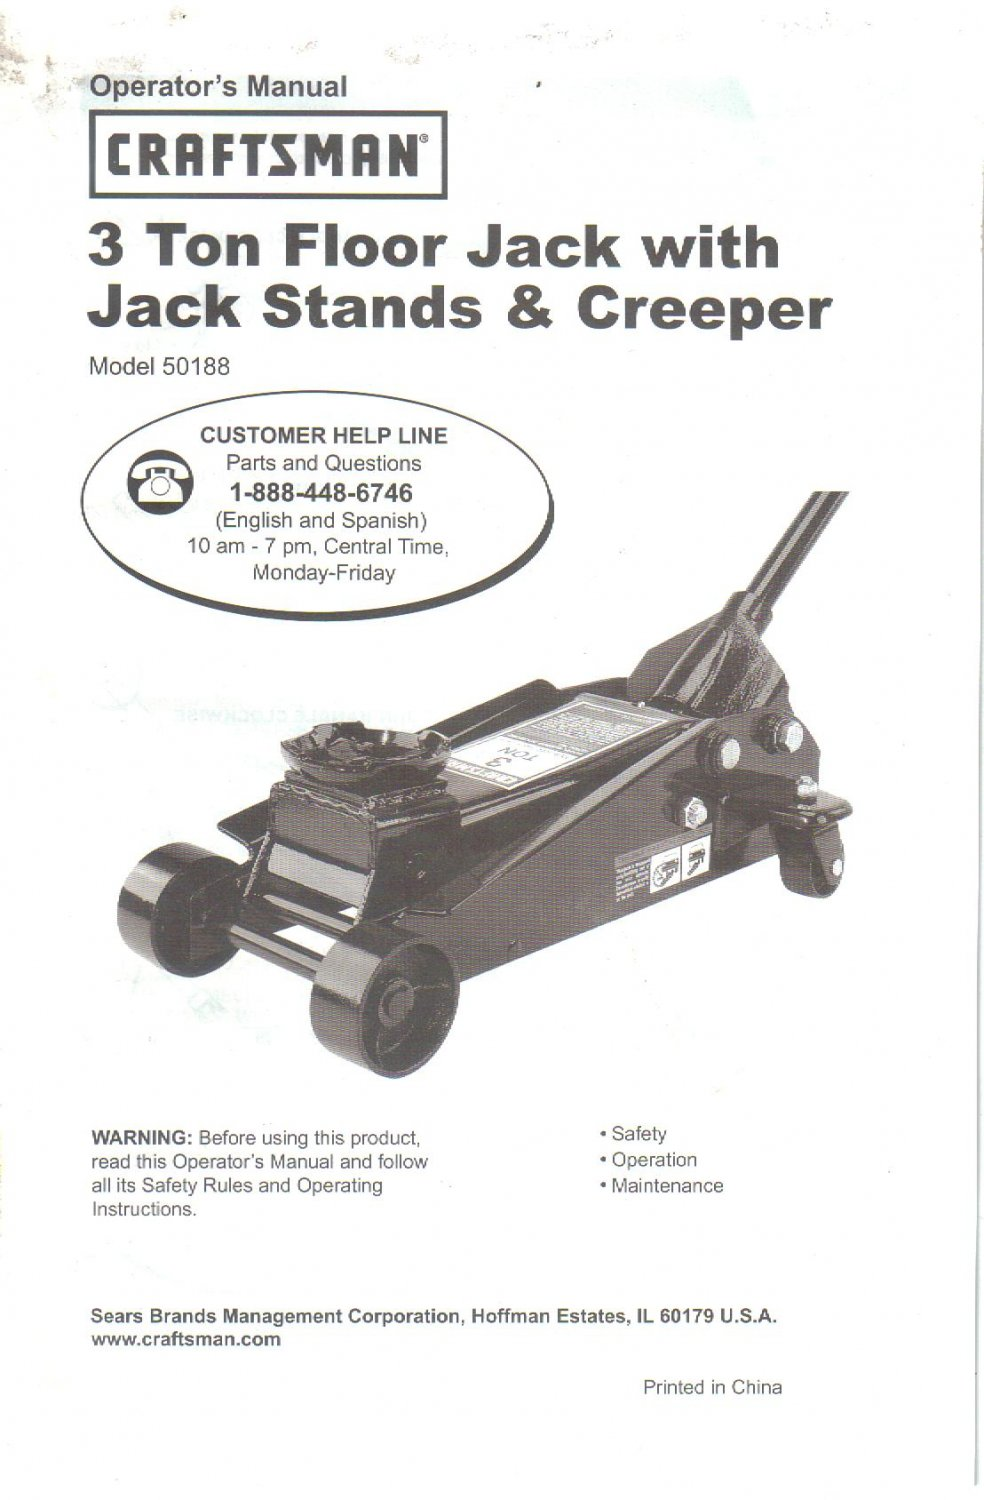 Sears 3 Ton Floor Jack Owner's Operator's Manual Instructions Guide, Model 50188 Jack Stands Creeper